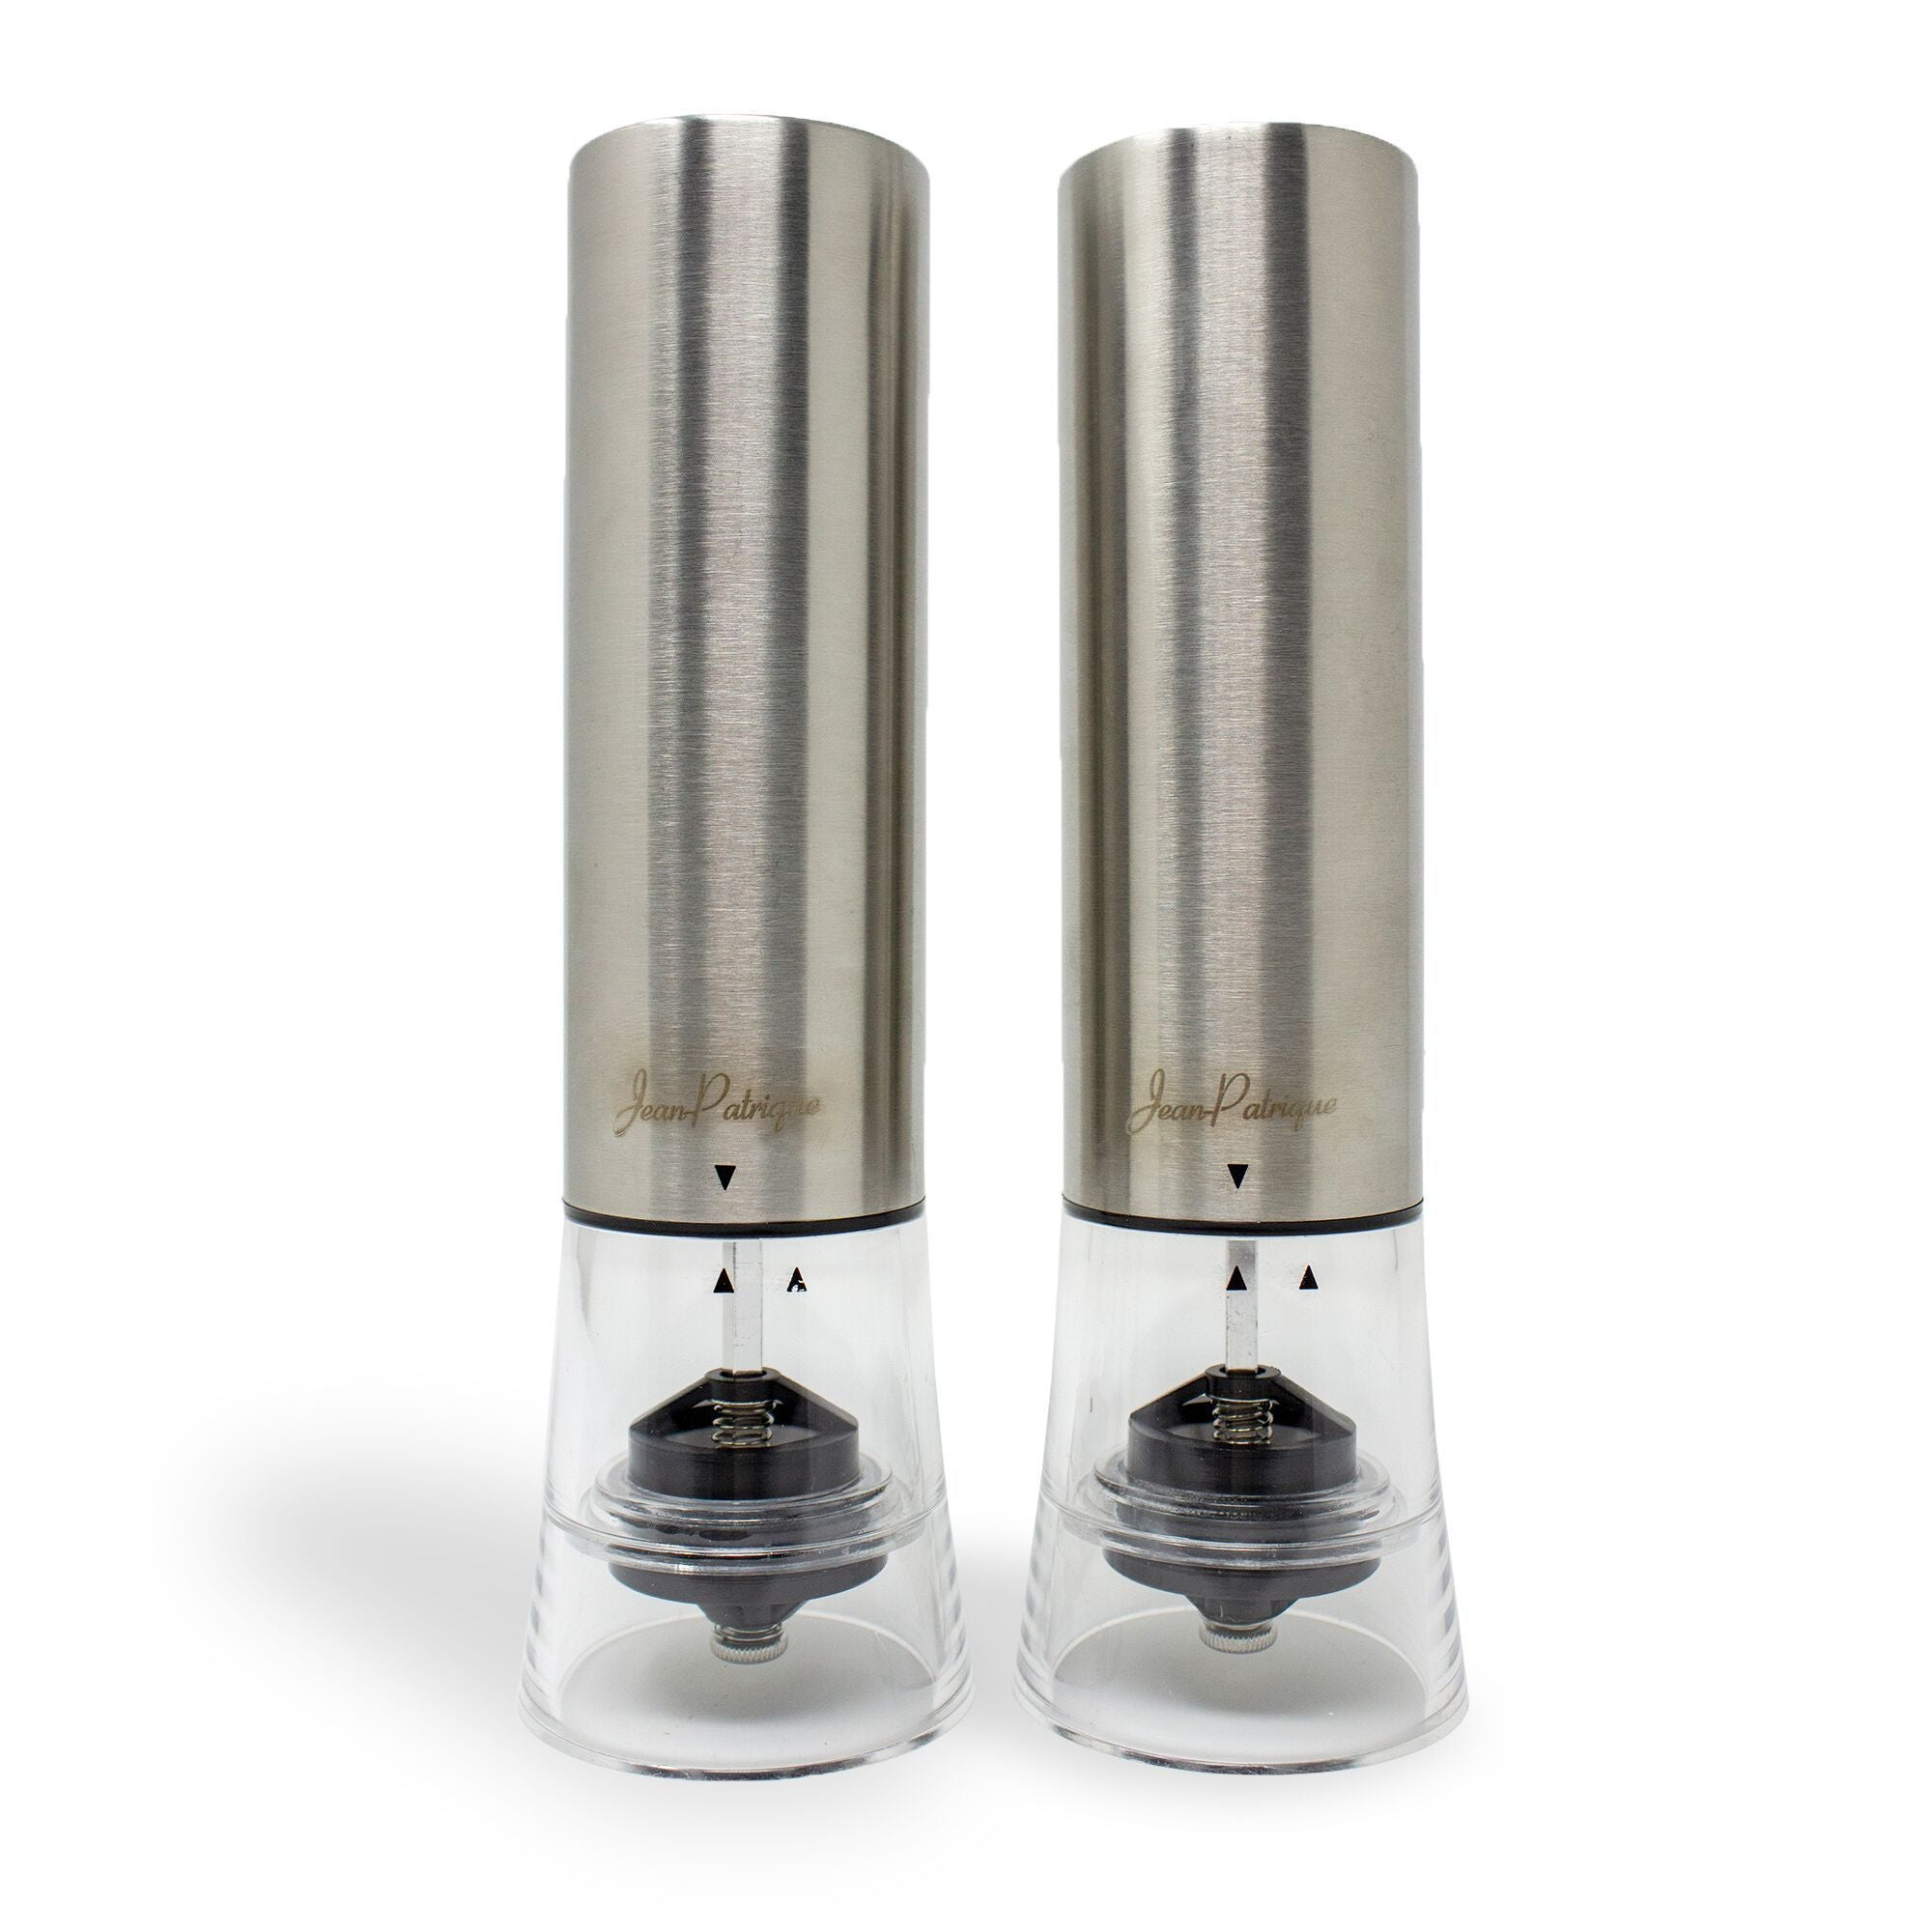 'One-Touch' Stainless Steel Electronic Salt and Pepper Mill Set